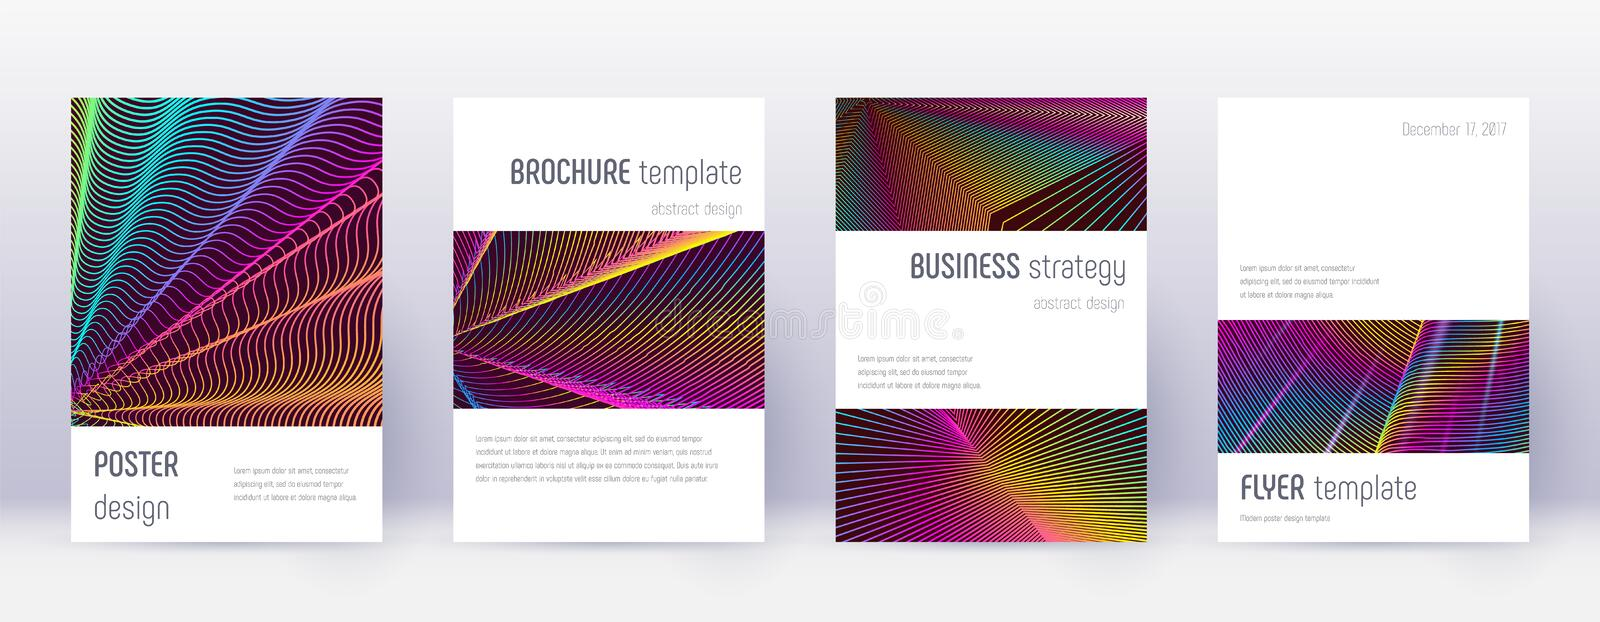 Minimalistic brochure design template set. Rainbow. Abstract lines on wine red background. Authentic brochure design. Breathtaking catalog, poster, book royalty free illustration